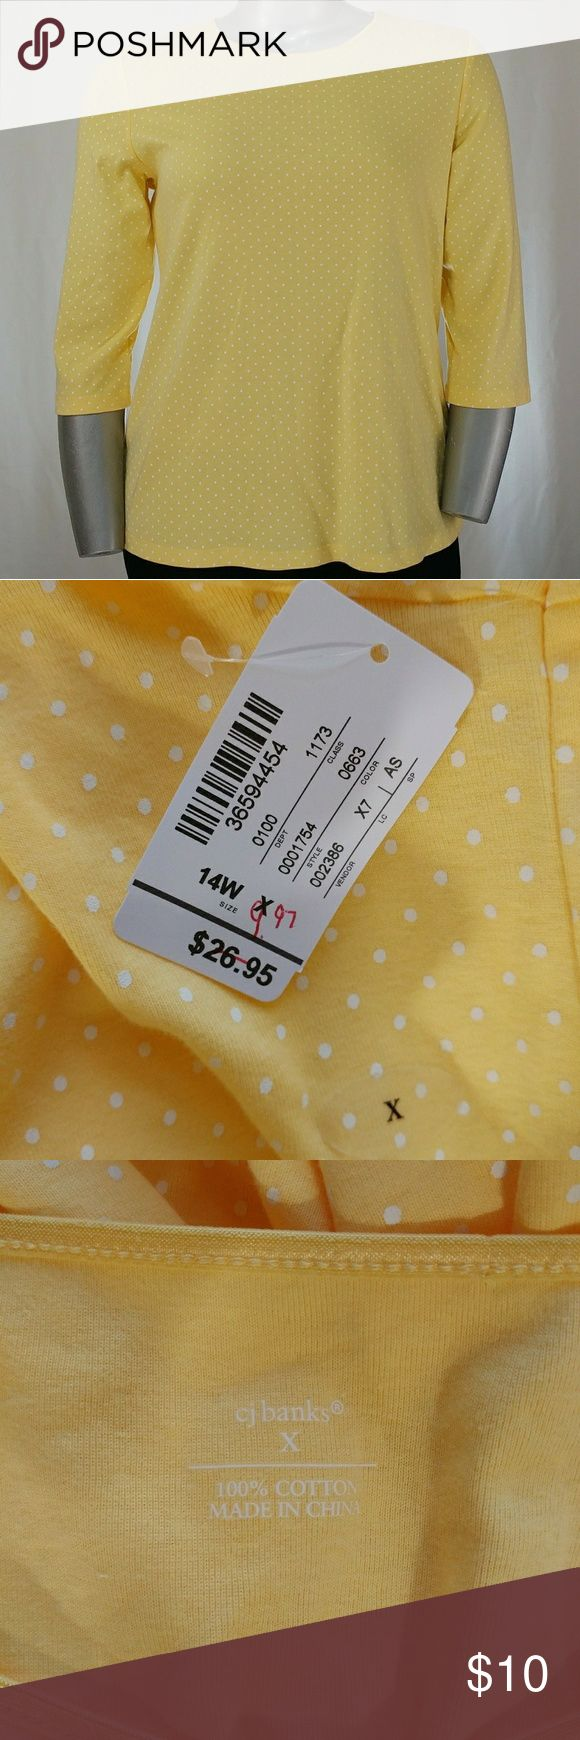 "CJ Banks Yellow Polka Dot Shirt, 14W New with tags! Yellow w/white polka-dots, 3/4 sleeve, boat neck, cotton shirt.   100% cotton.   27"" length, 44"" bust. (All measurements are approximate.)   Size 14W by CJ Banks. CJ Banks Tops Tees - Short Sleeve"